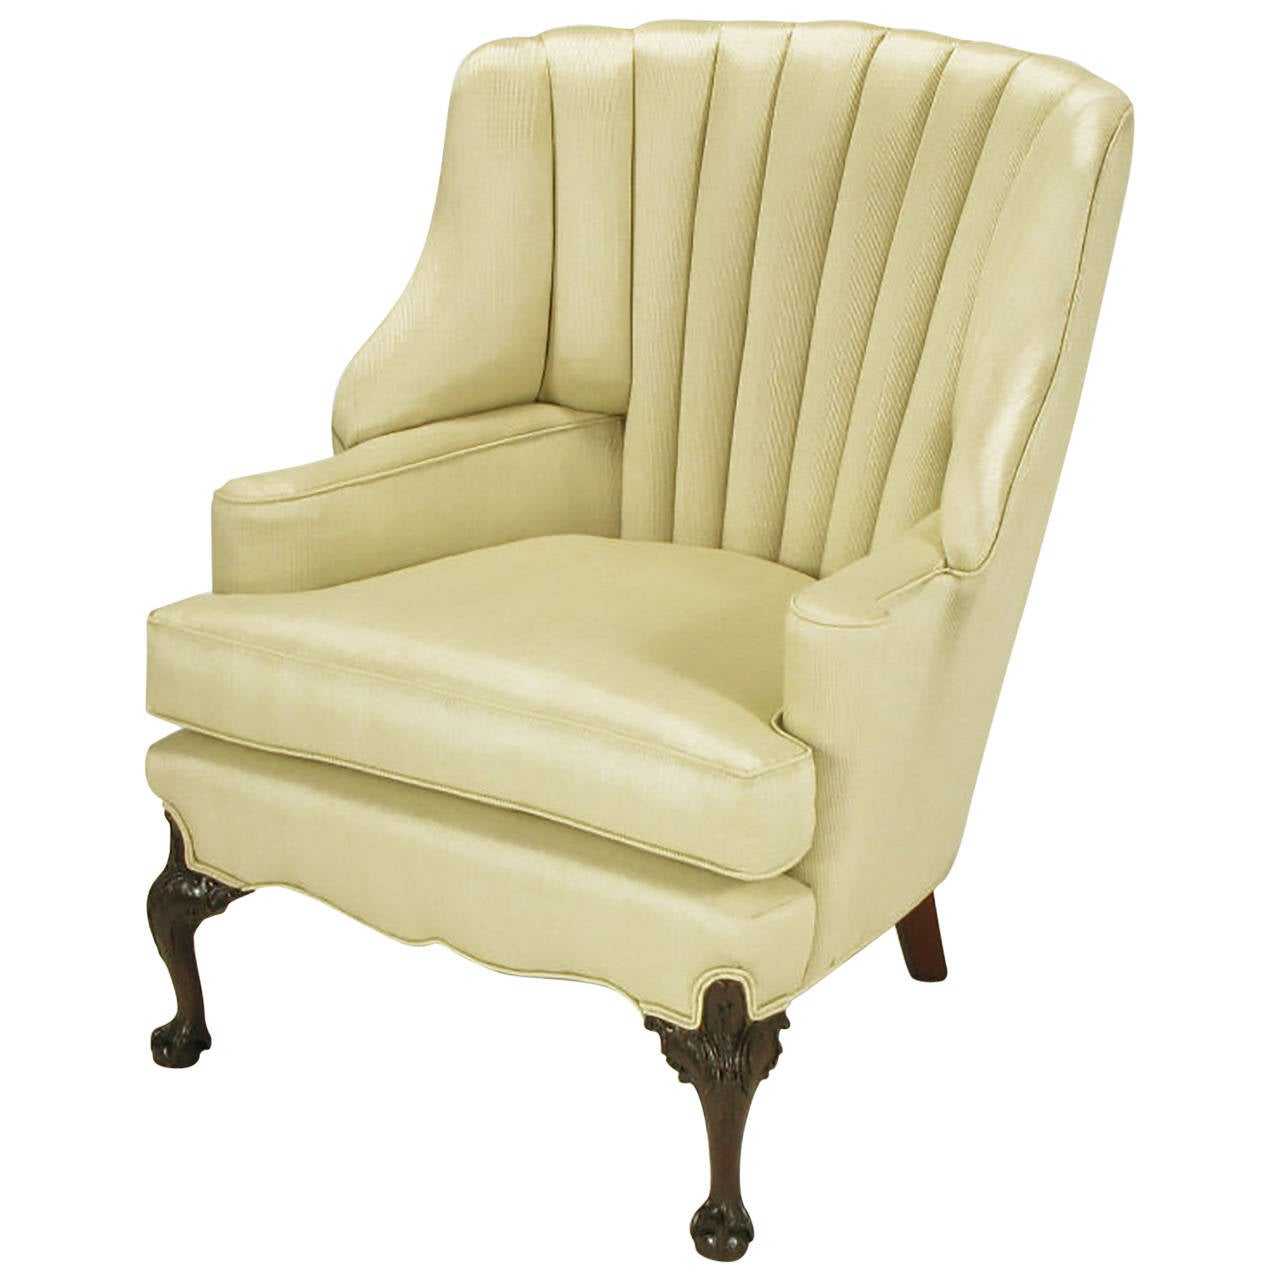 Superior 1930s Channel Back Claw Foot Georgian Wingback Chair 1